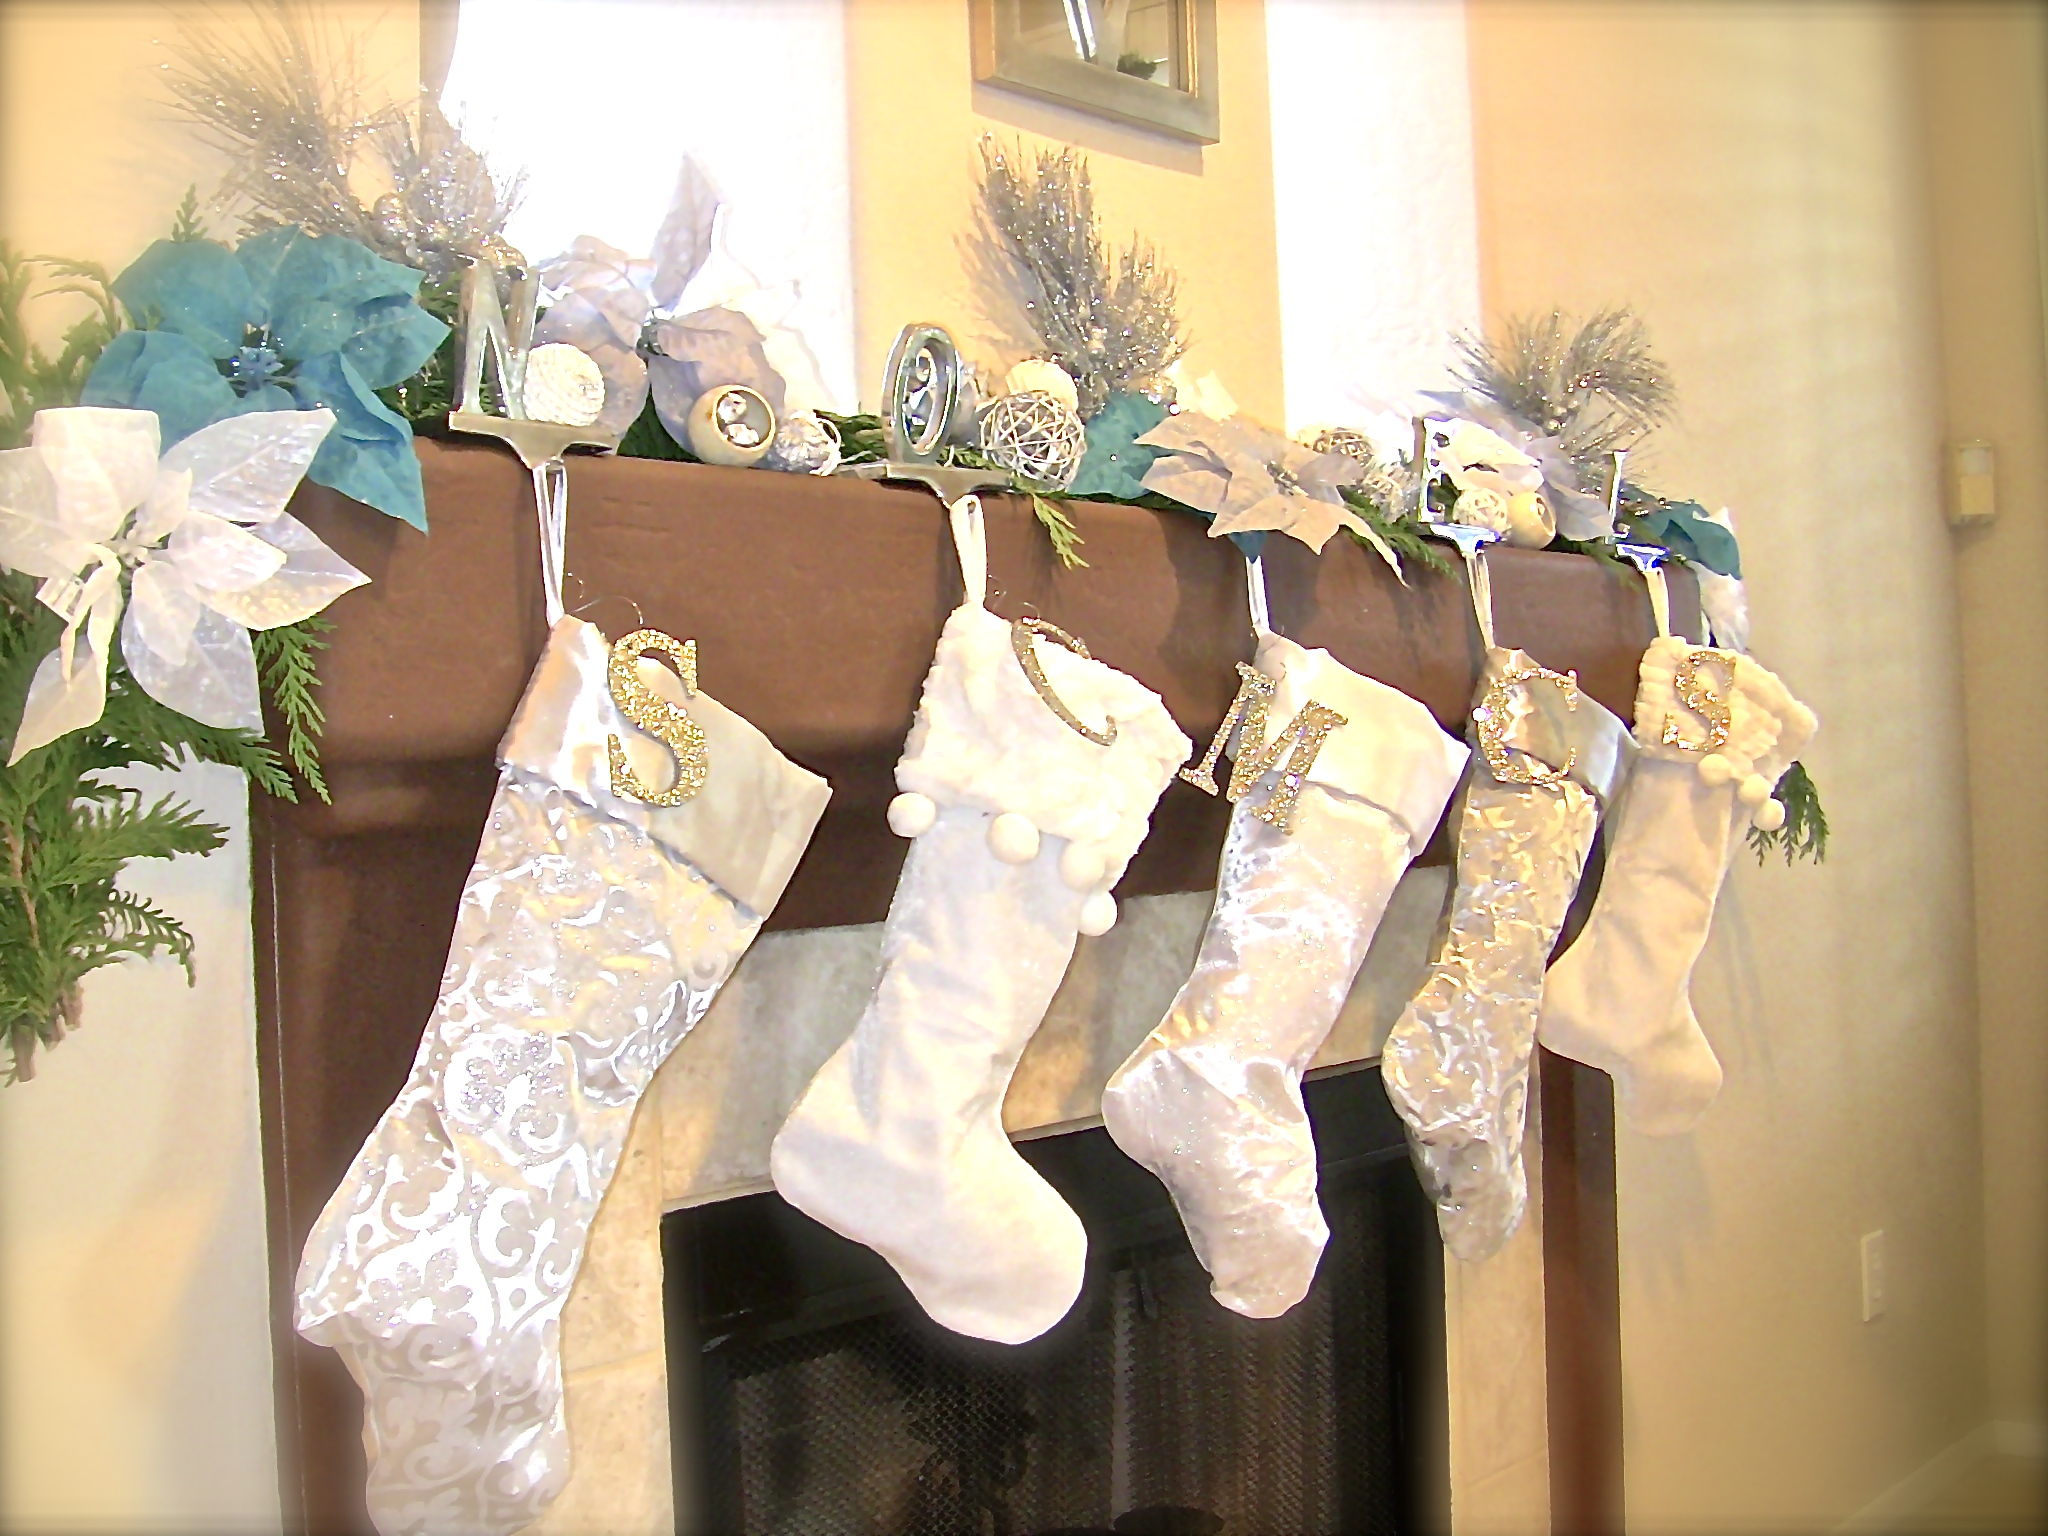 Pine Cone Stocking Holder | Stocking Holders | Stocking Holders Stand